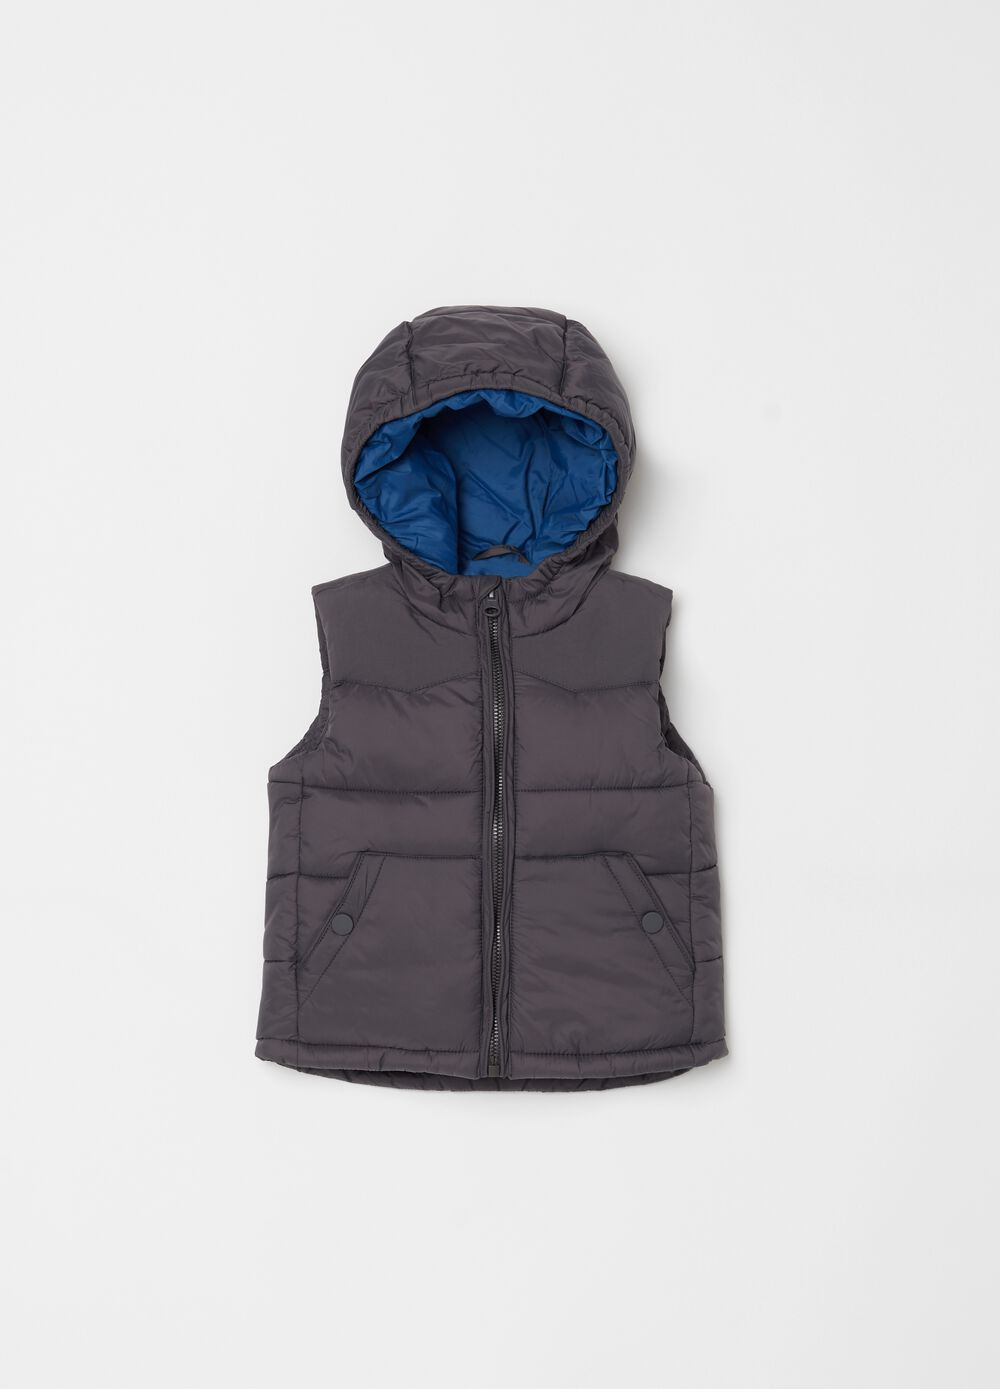 Padded gilet with hood and pockets